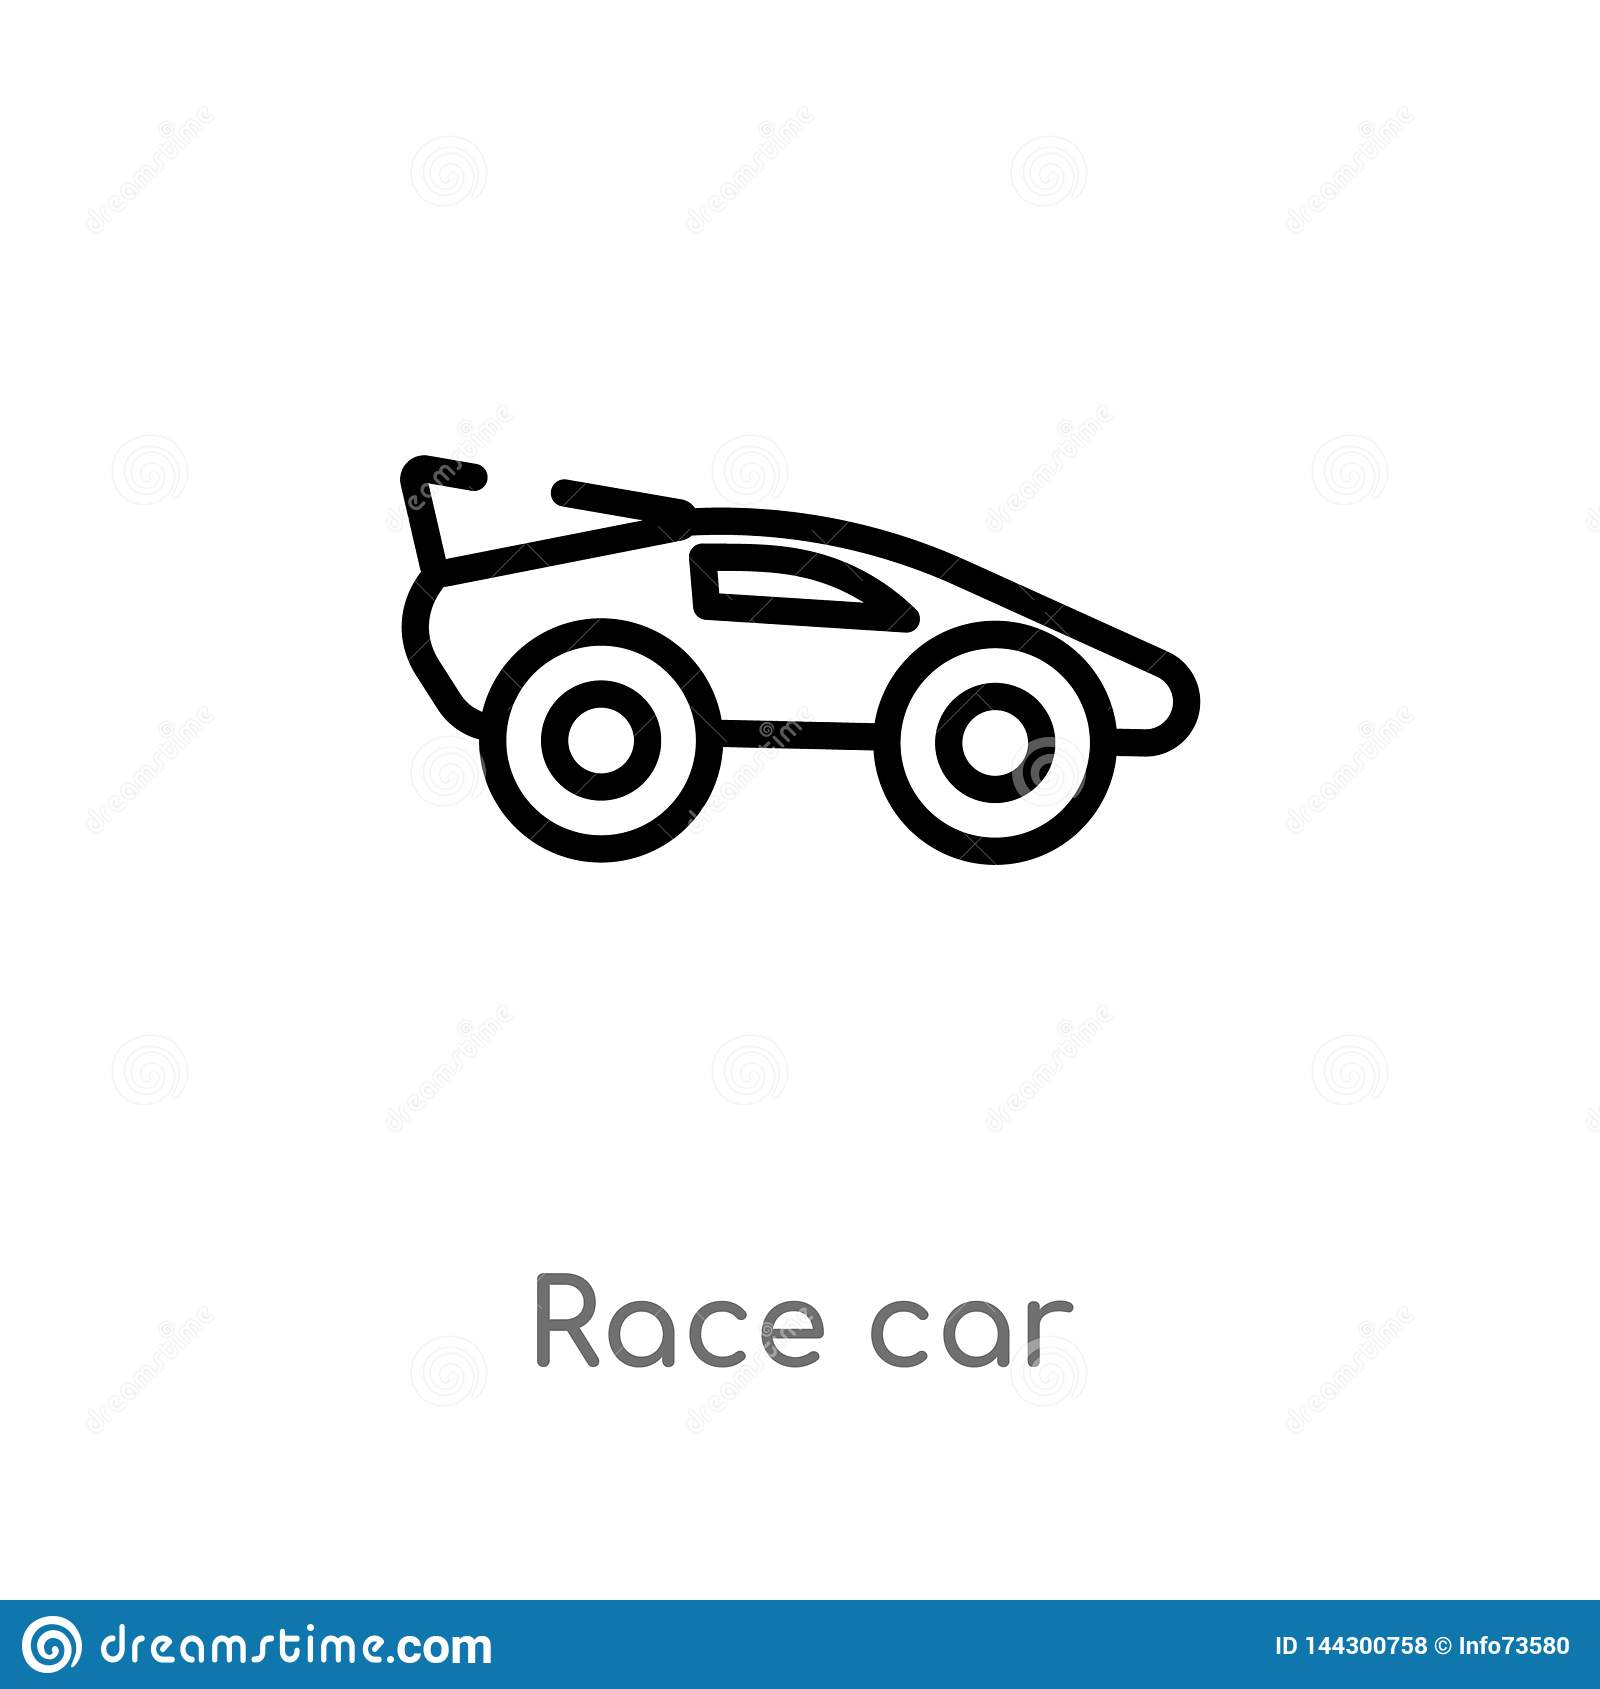 Outline Race Car Vector Icon  Isolated Black Simple Line